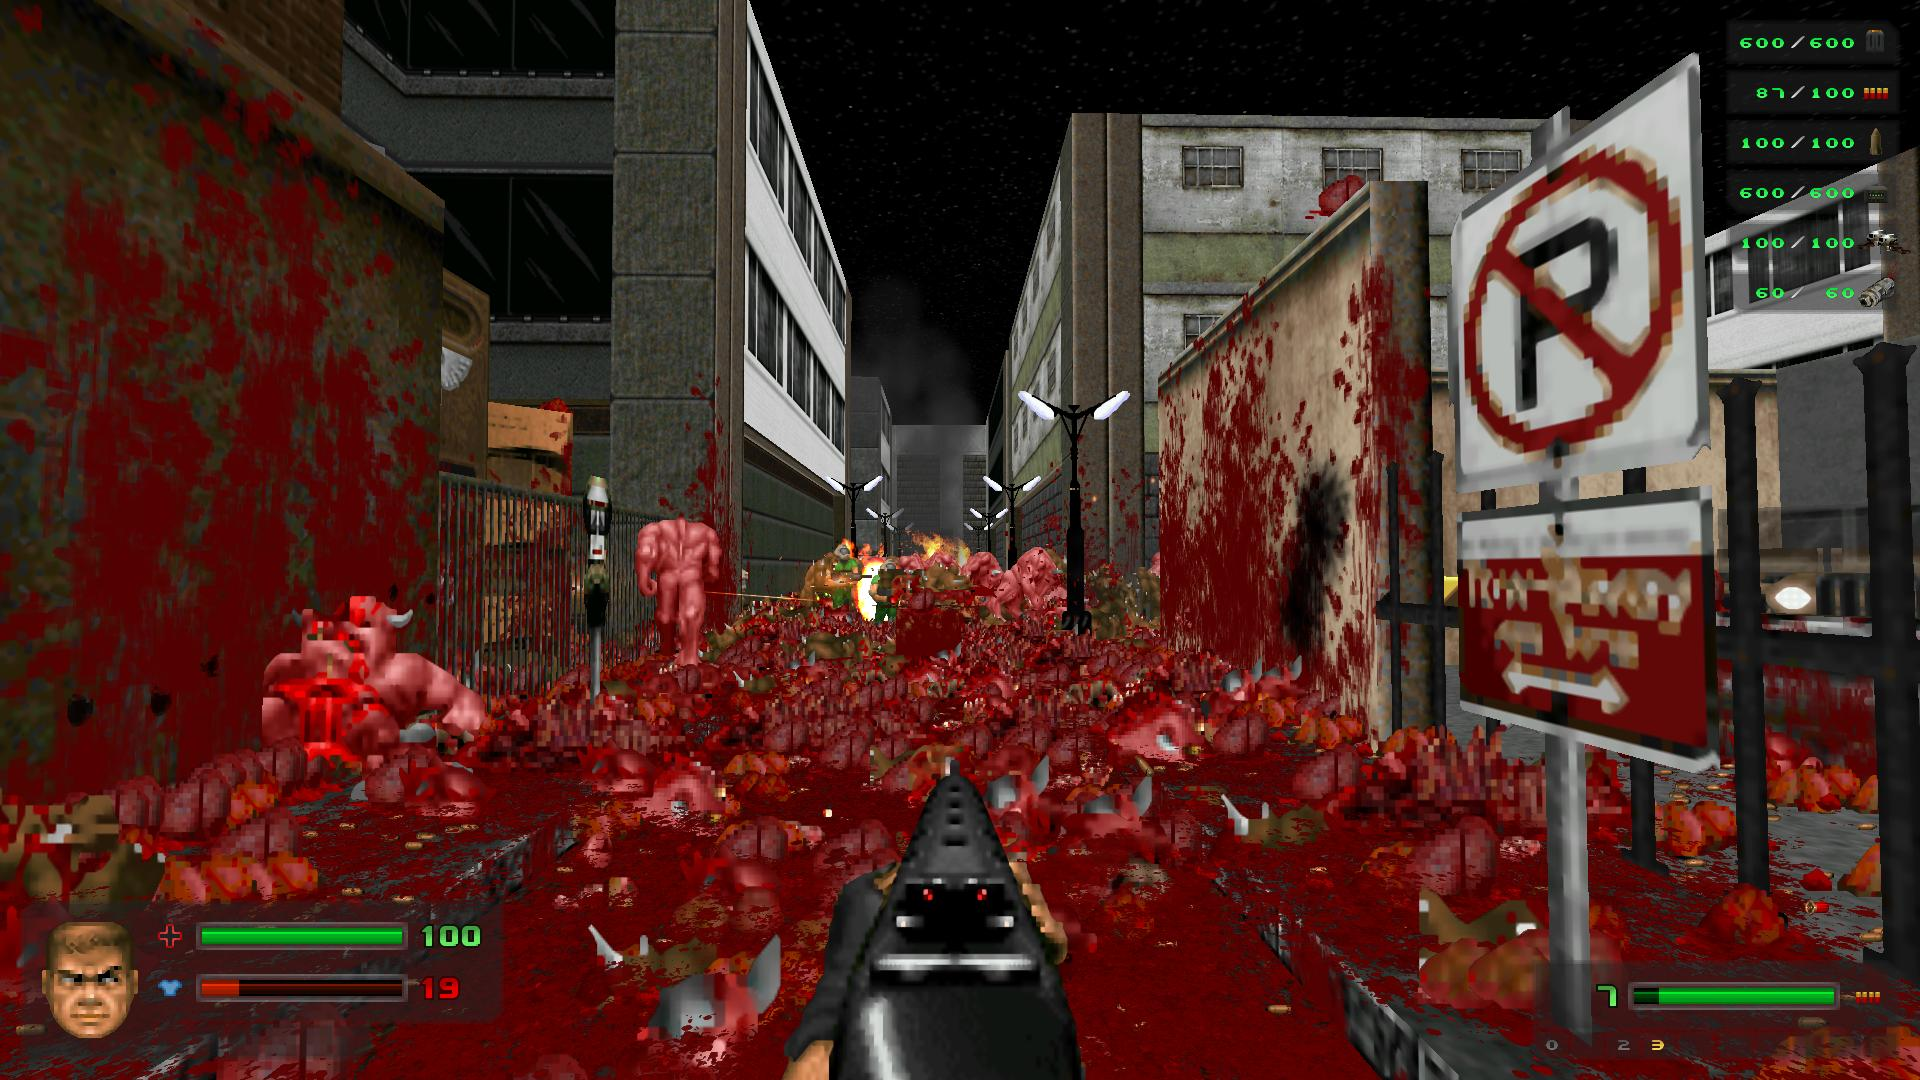 Brutal Doom 's ott gore doesn't exactly inspire regret or sympathy. Because demons!